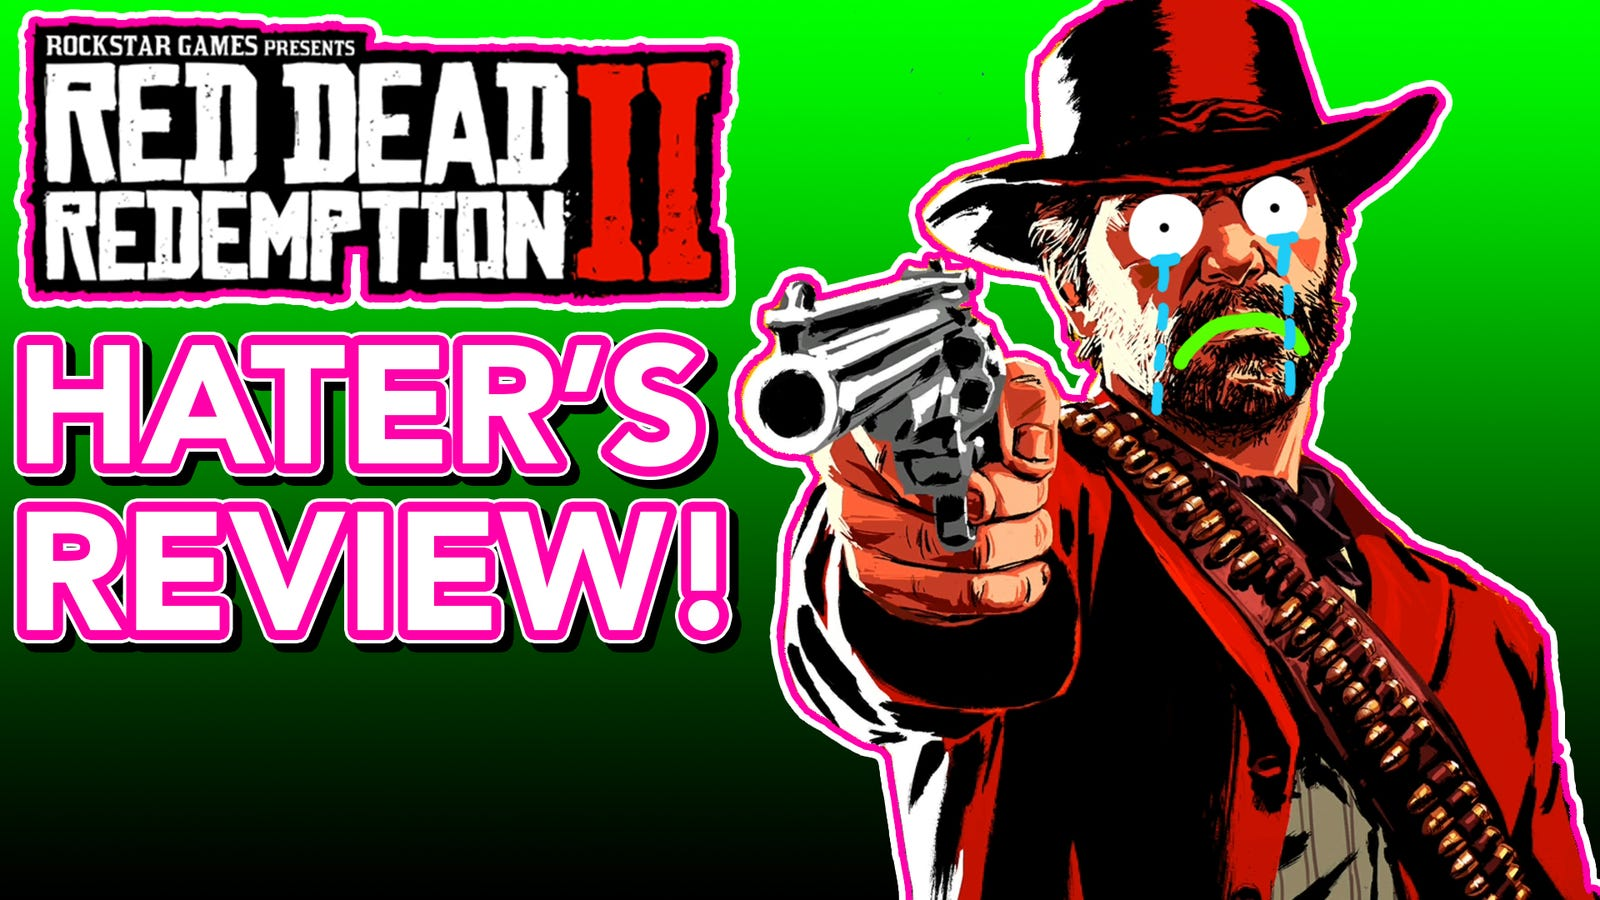 The Hater's Review Of Red Dead Redemption 2